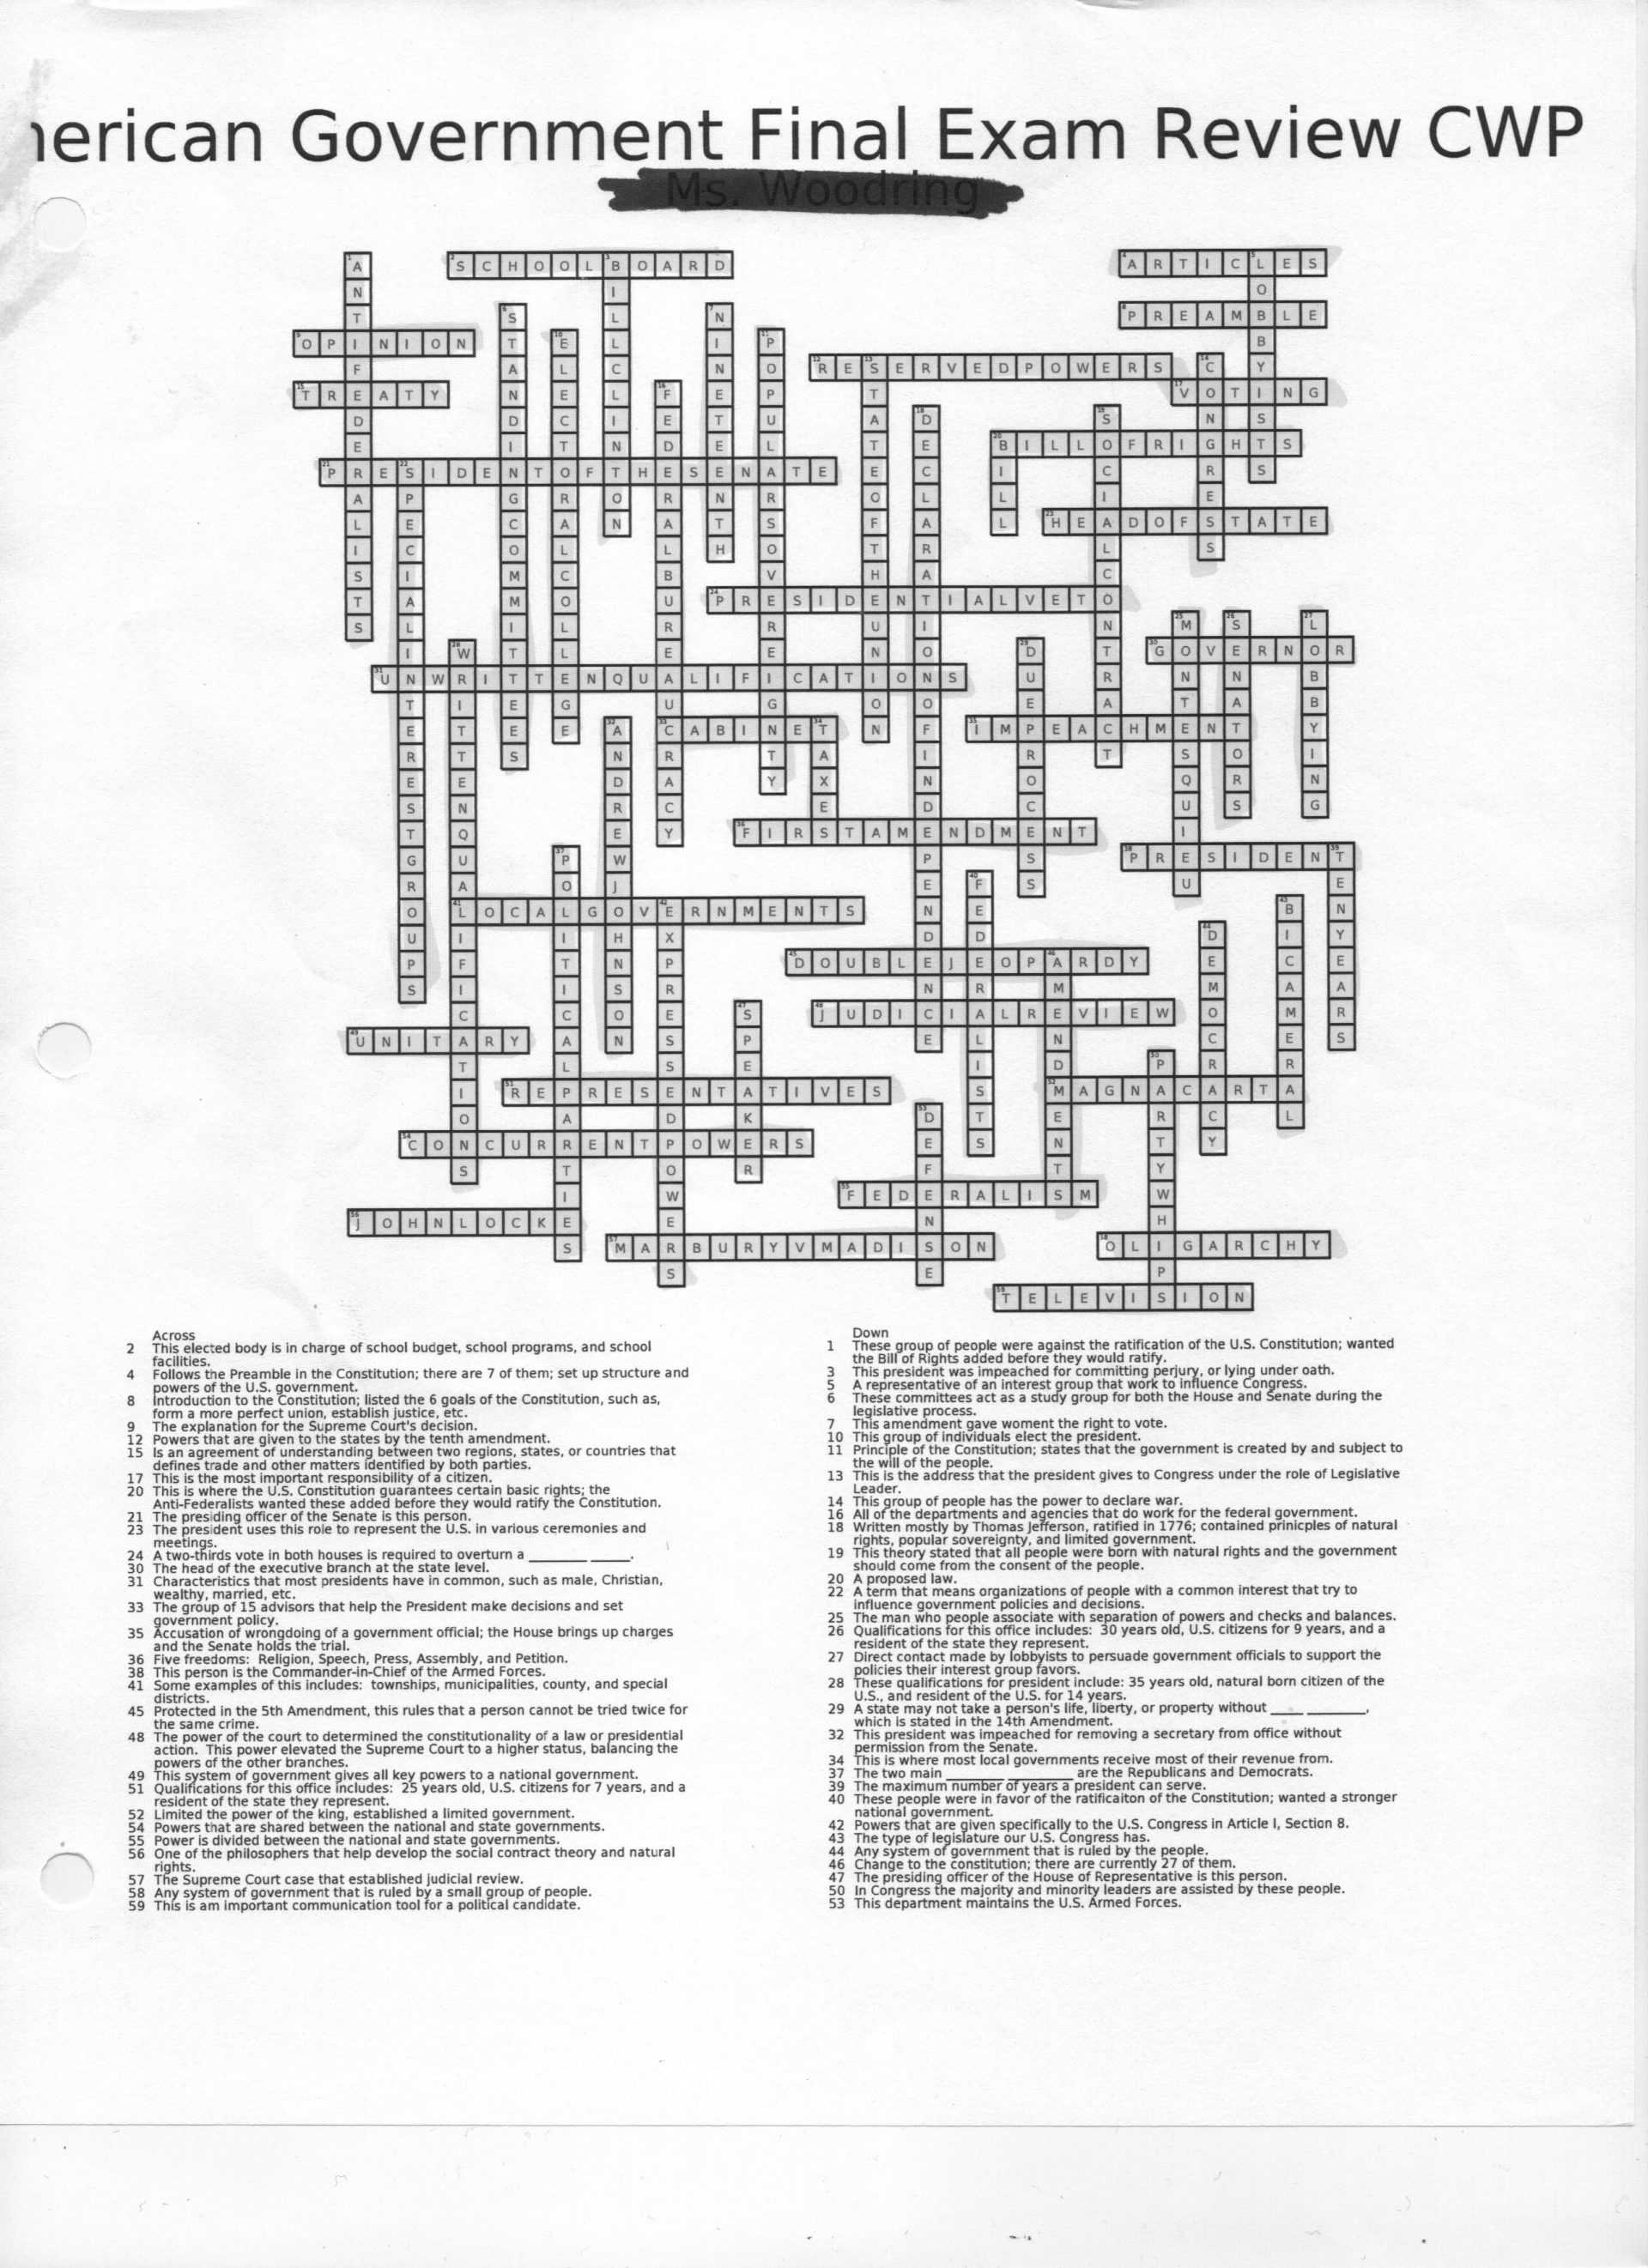 Legislative Branch Worksheet Middle School or Crossword Usnment Puzzle Printable Challenging Clueskey Answer Keys